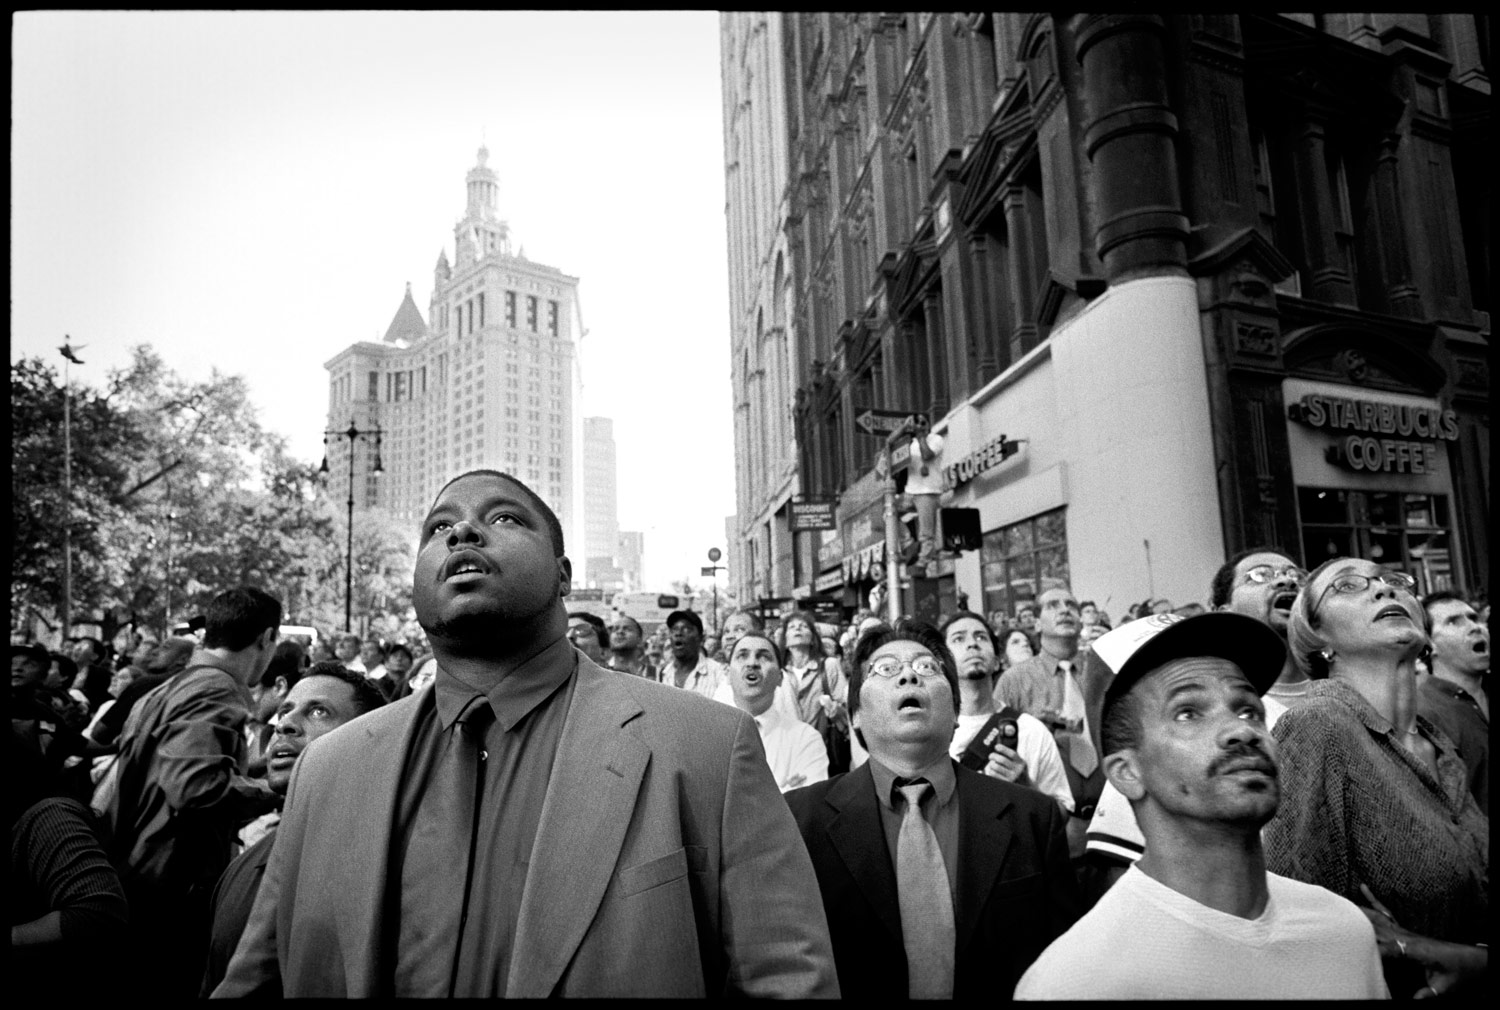 Peoples-Reactions-To-The-Nine-Eleven-Twin-Towers-Attack-In-New-York